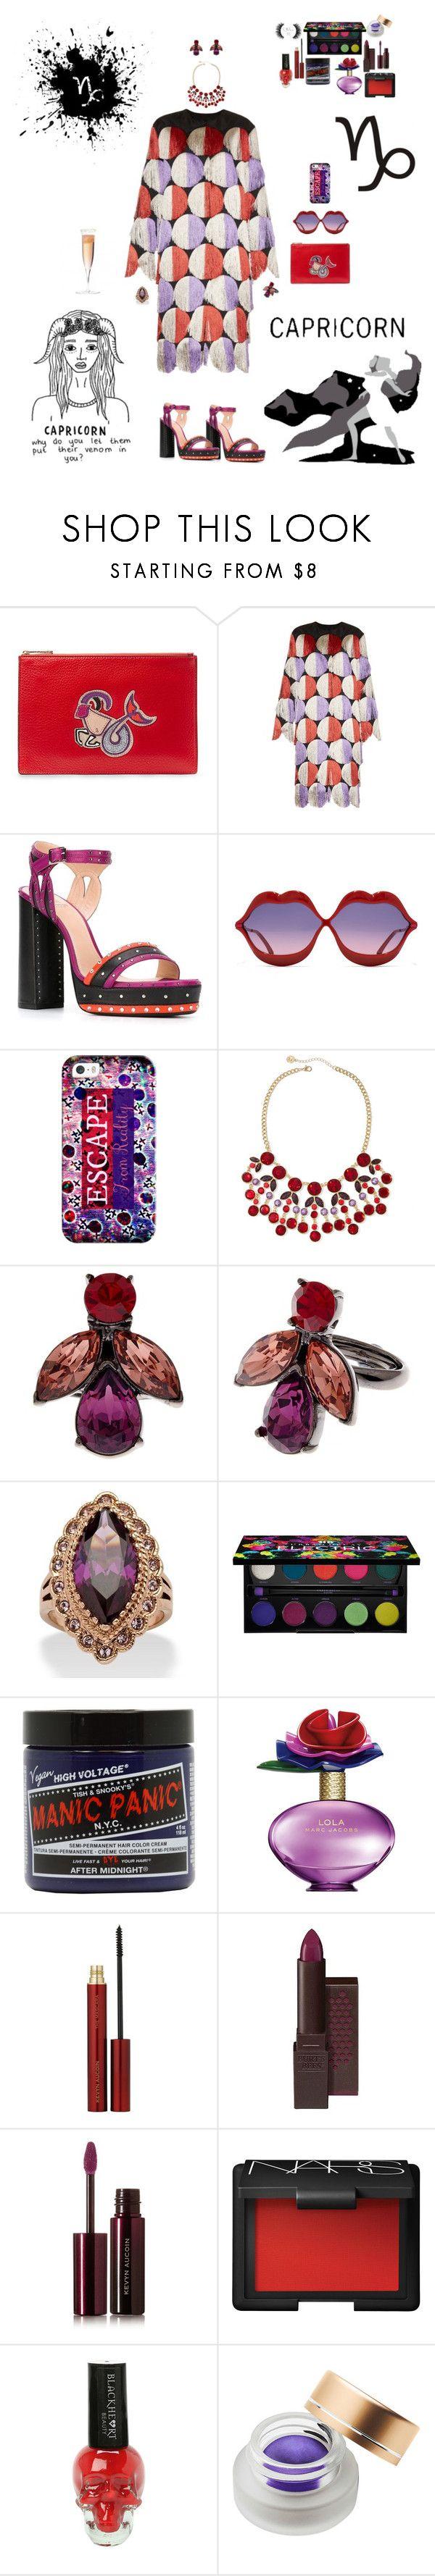 """Capricorn Castles"" by blackmagicmomma ❤ liked on Polyvore featuring Diane Von Furstenberg, Marco de Vincenzo, Lanvin, Wildfox, Casetify, Liz Claiborne, Oscar de la Renta, Palm Beach Jewelry, Urban Decay and Manic Panic NYC"